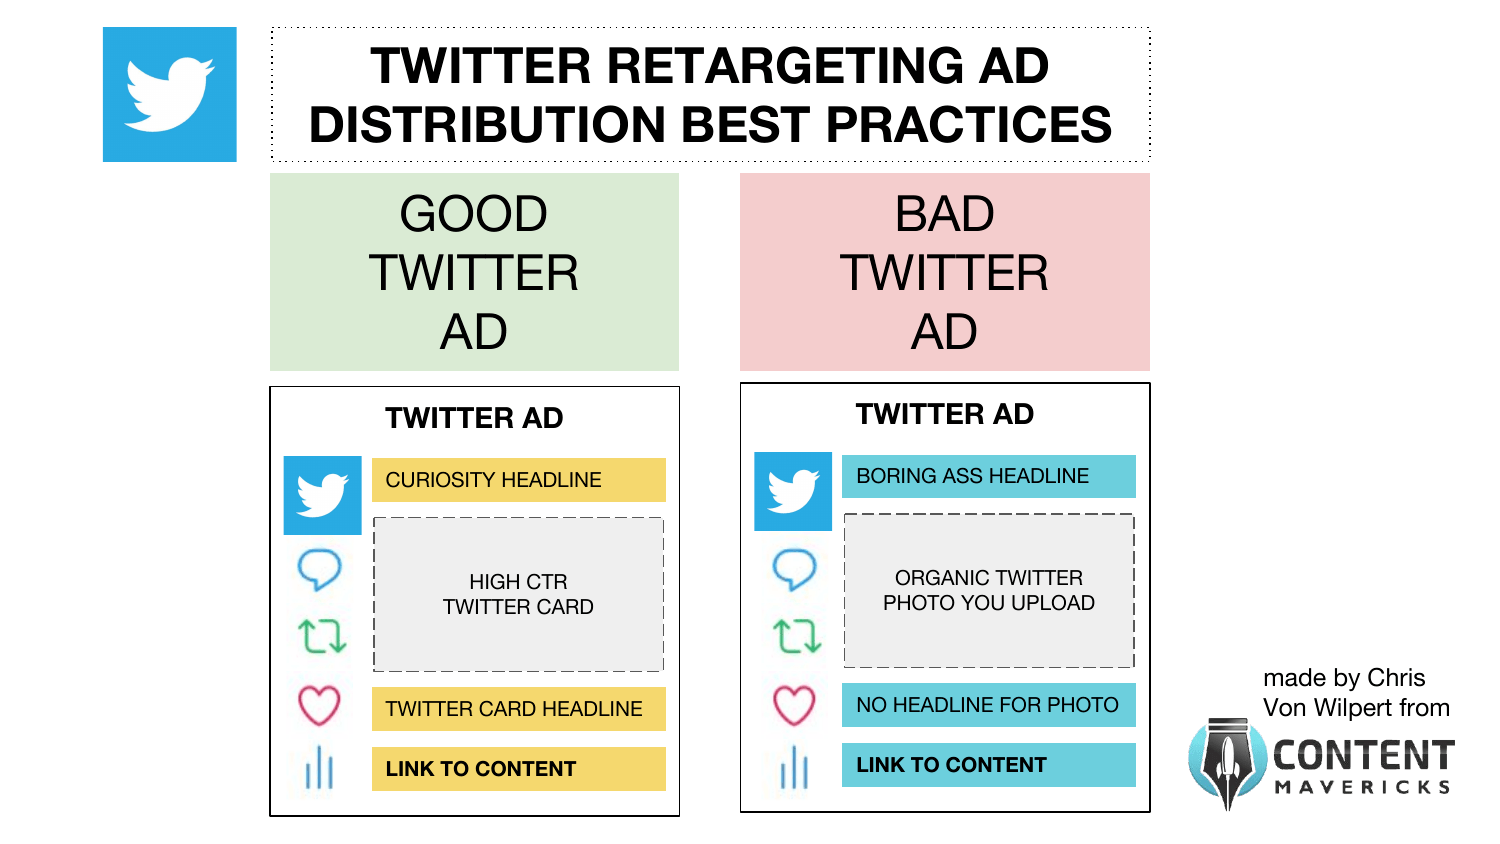 twitter retargeting ad content distribution best practices image